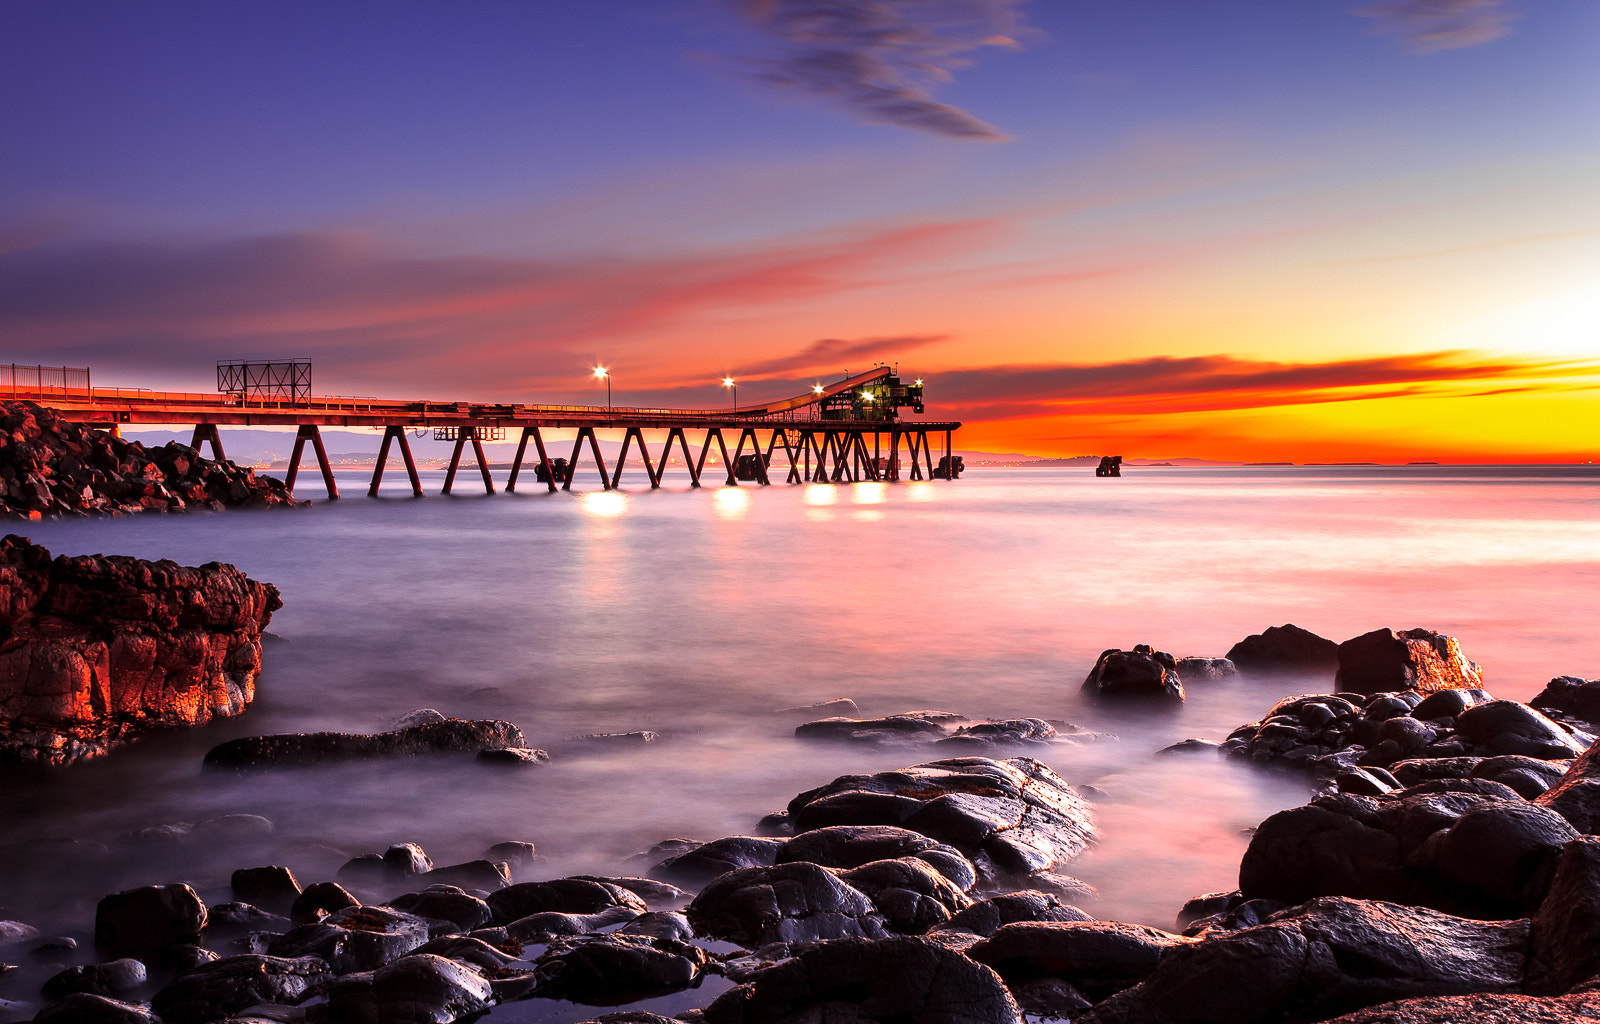 Photograph Pier by James Lee on 500px